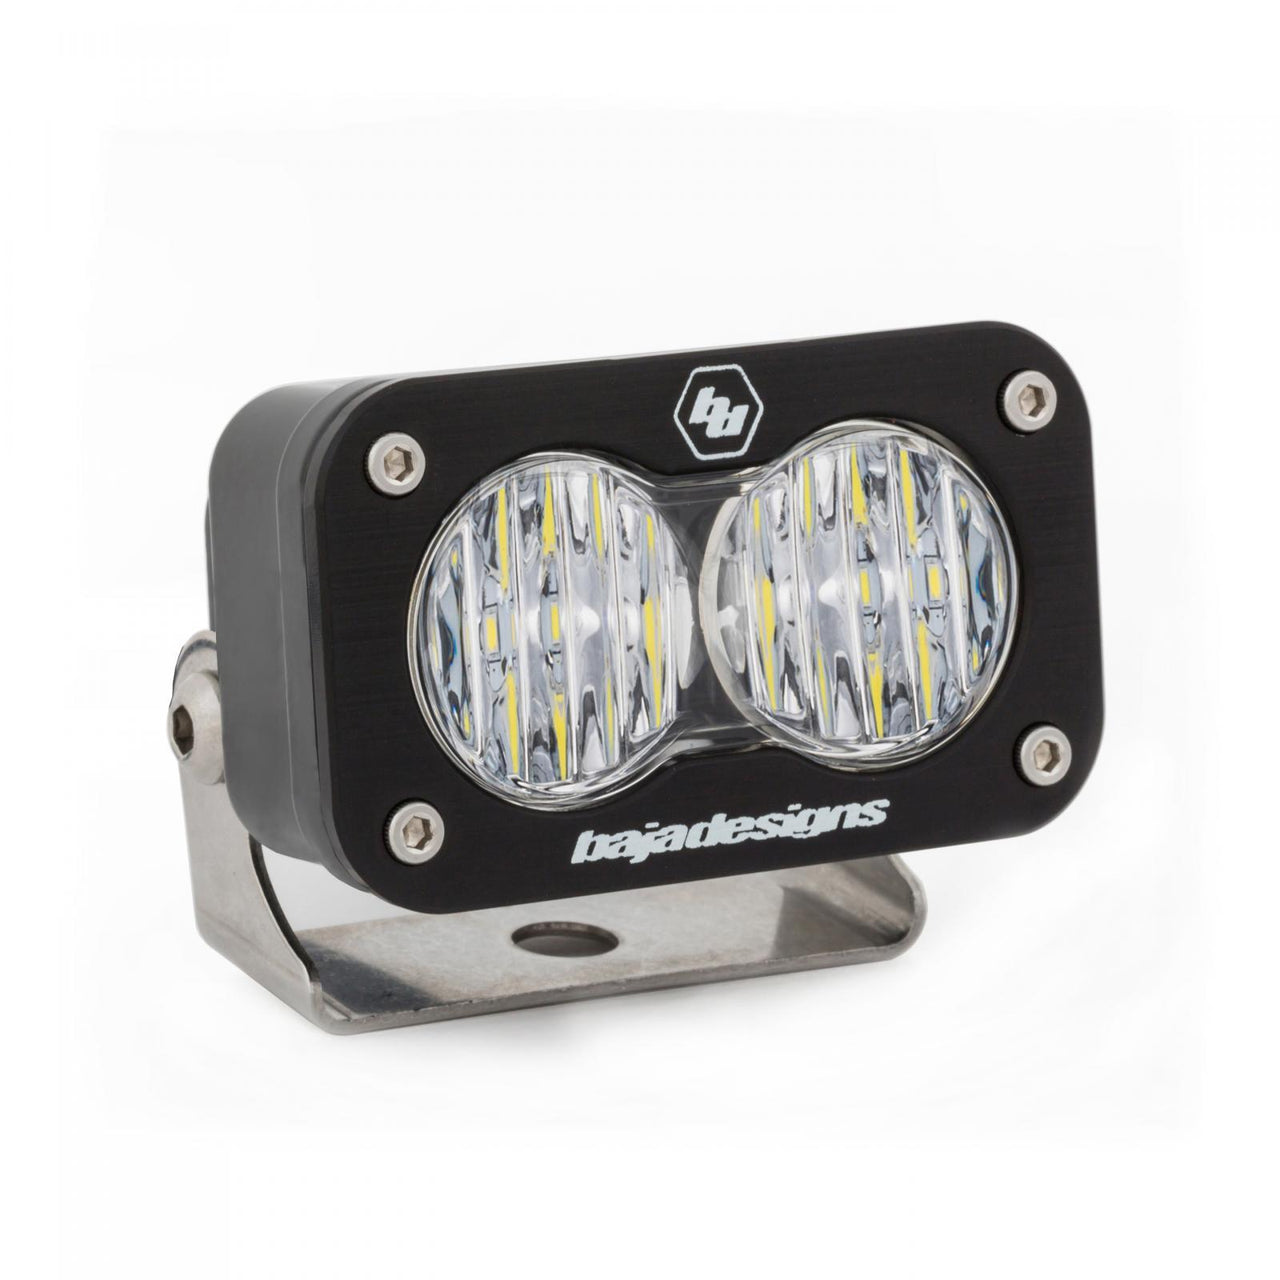 LED Work Light Clear Lens Wide Cornering Pattern Each S2 Sport Baja Designs